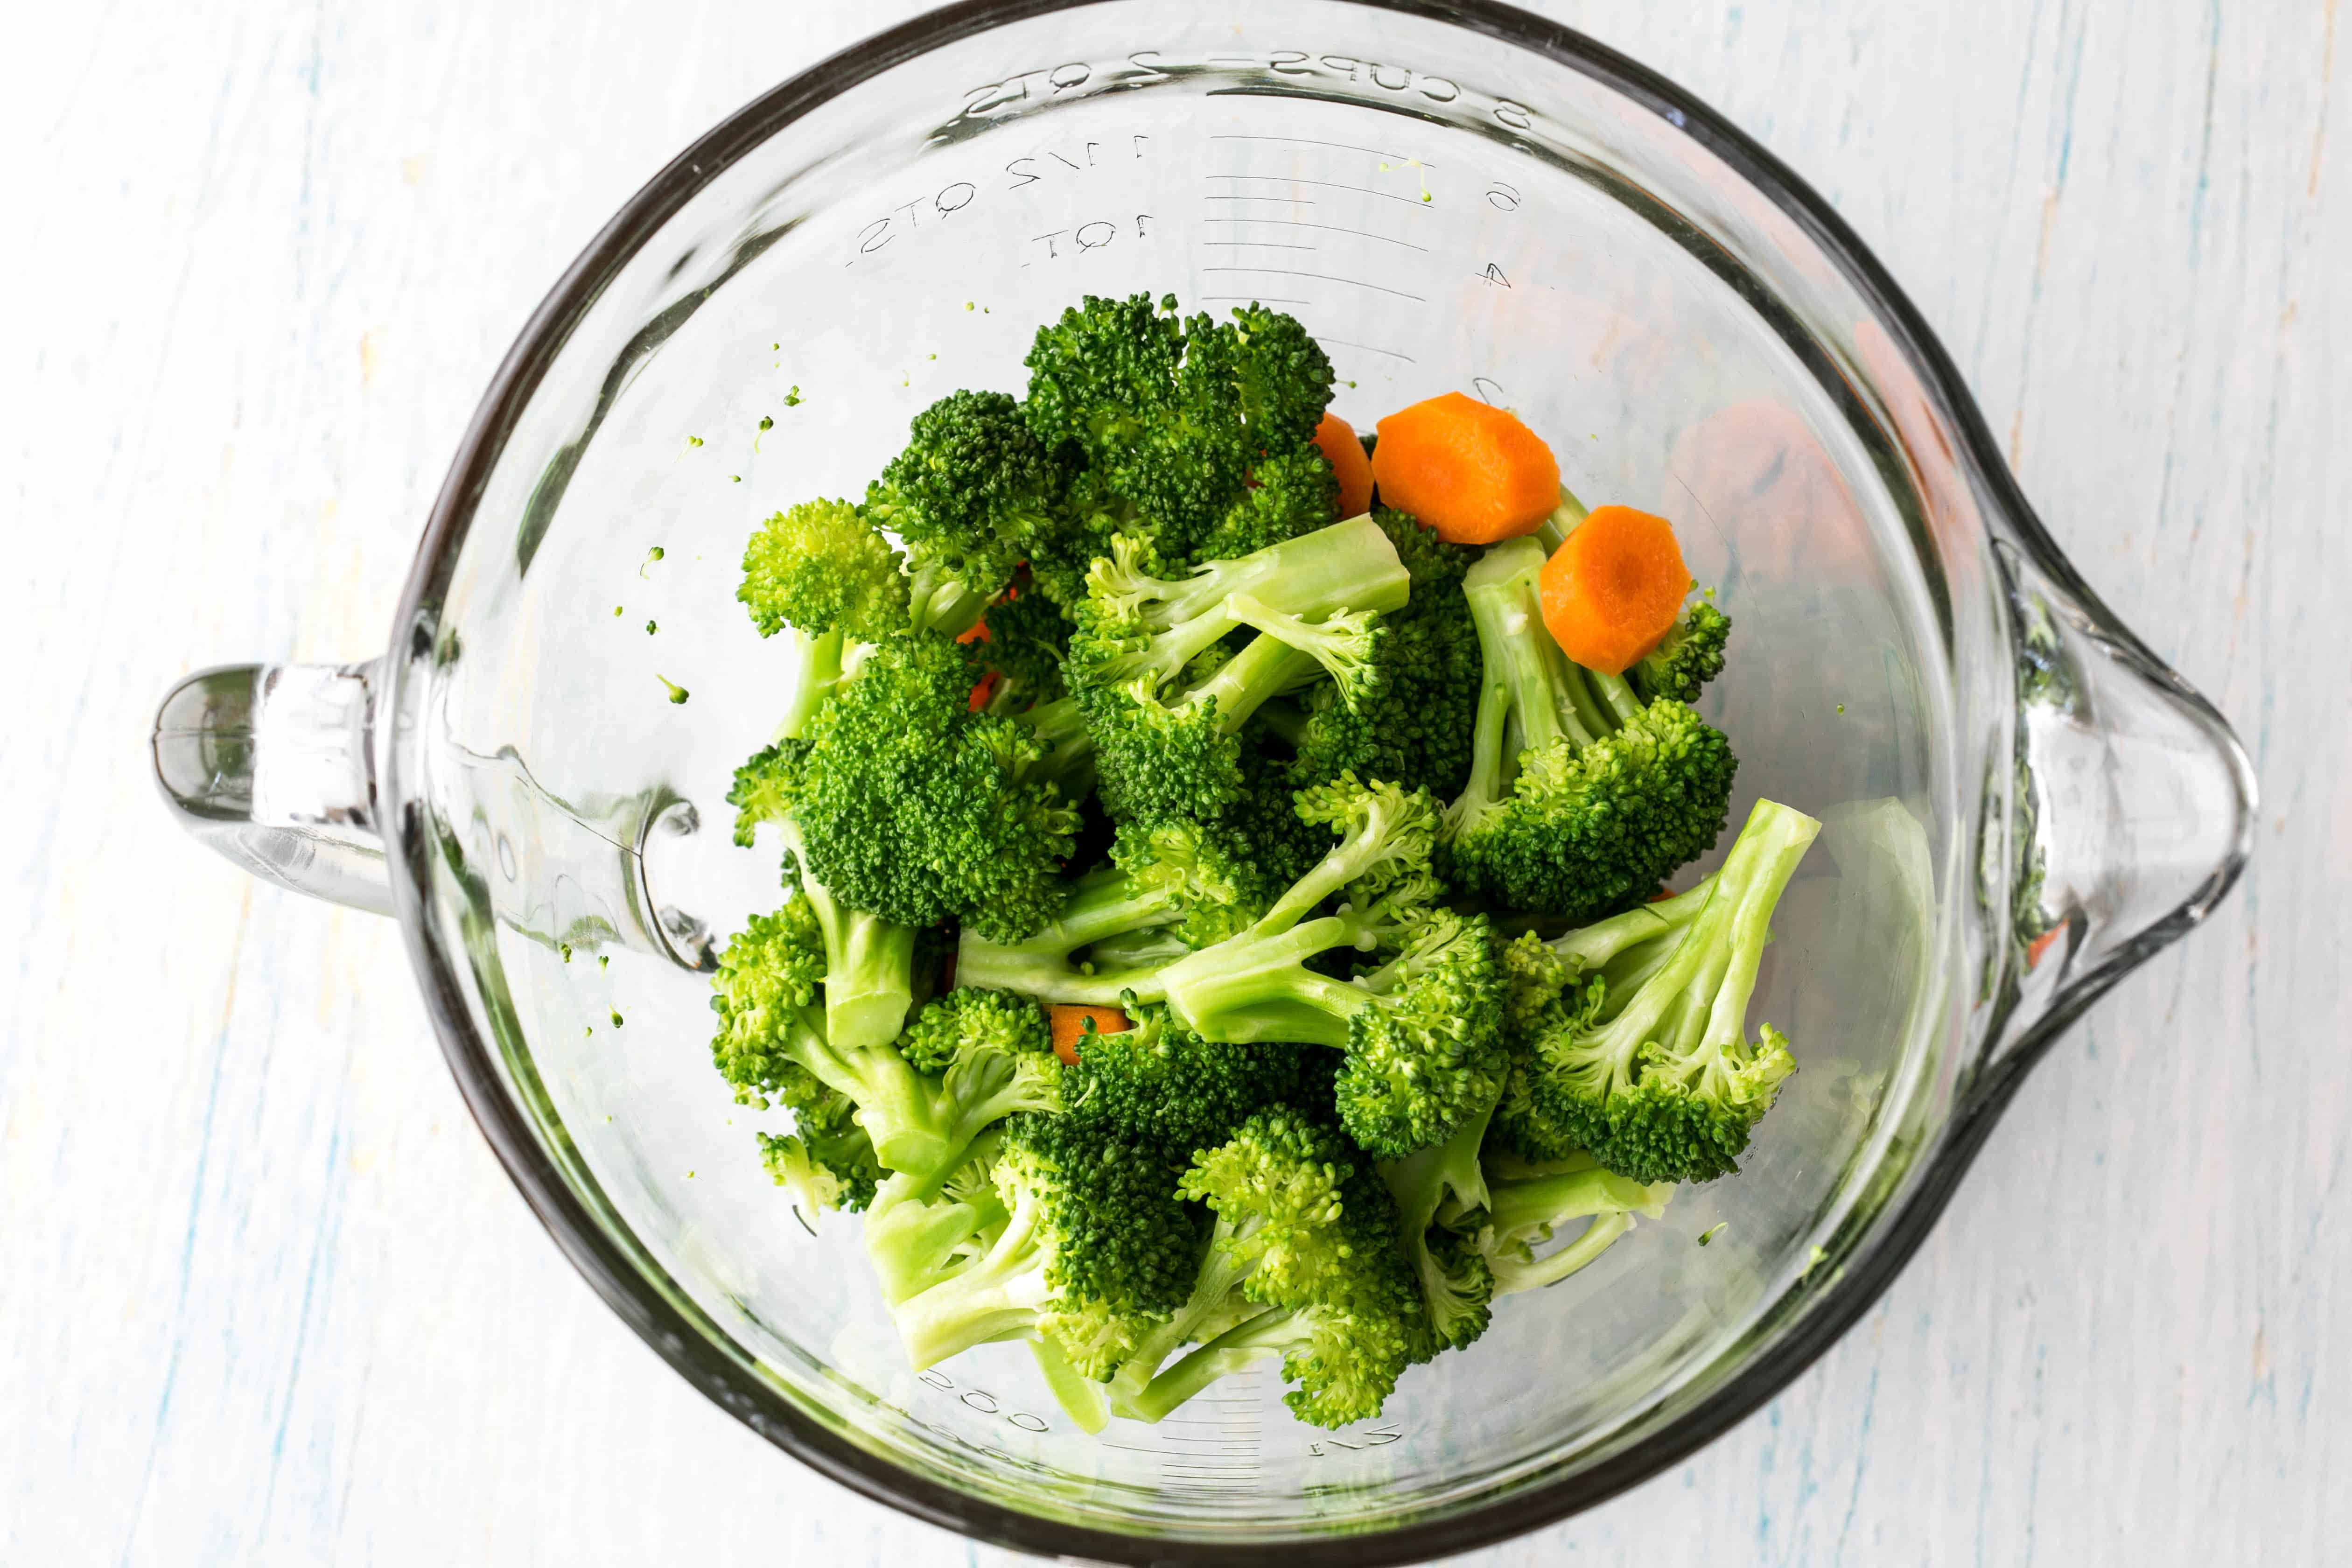 steamed broccoli and carrots in a glass bowl